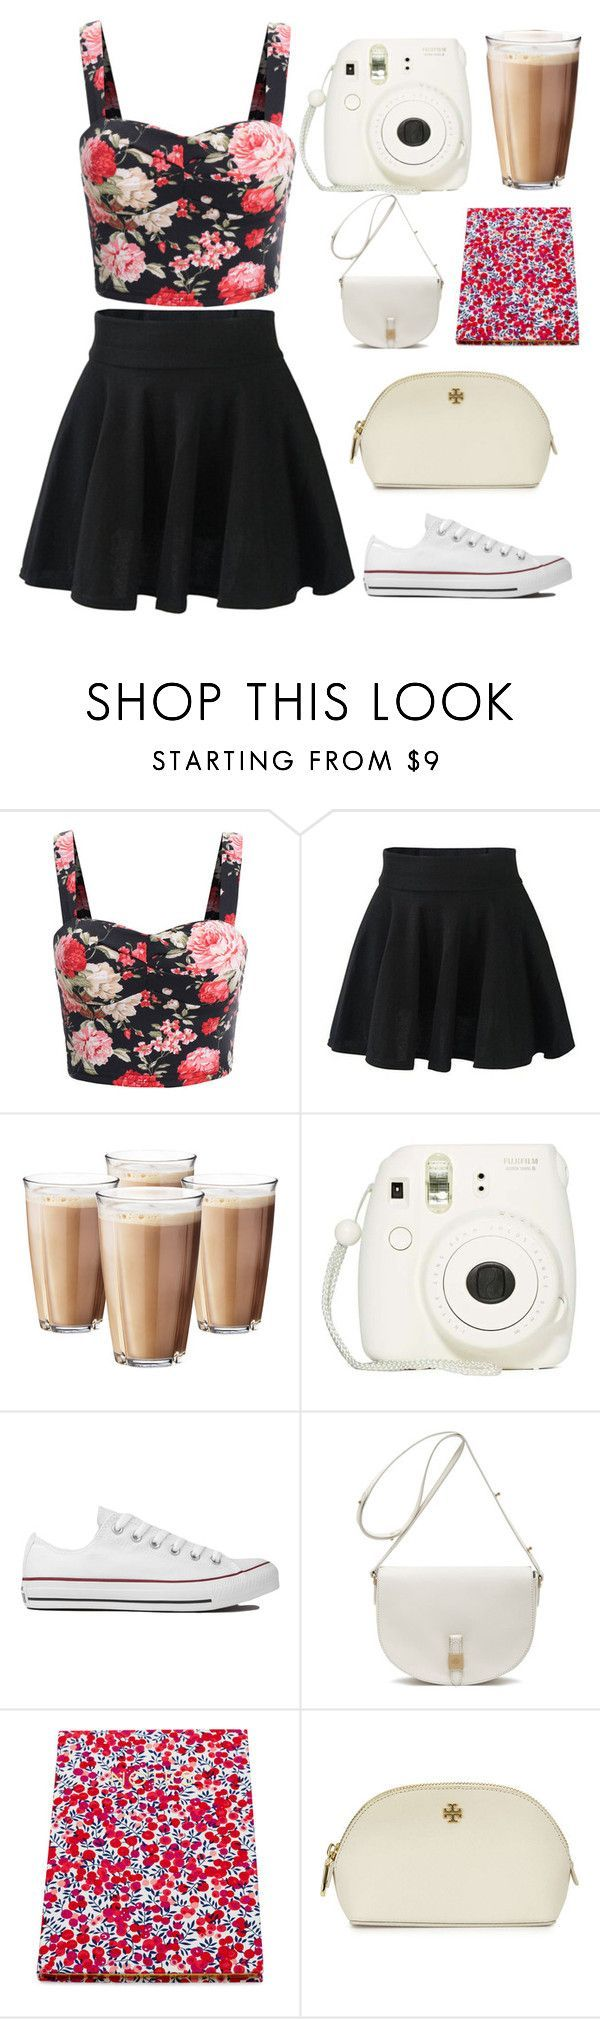 """Summer"" by queenlateen ❤ liked on Polyvore featuring Rosendahl, Converse, Mulberry, Flowers of Liberty and Tory Burch"